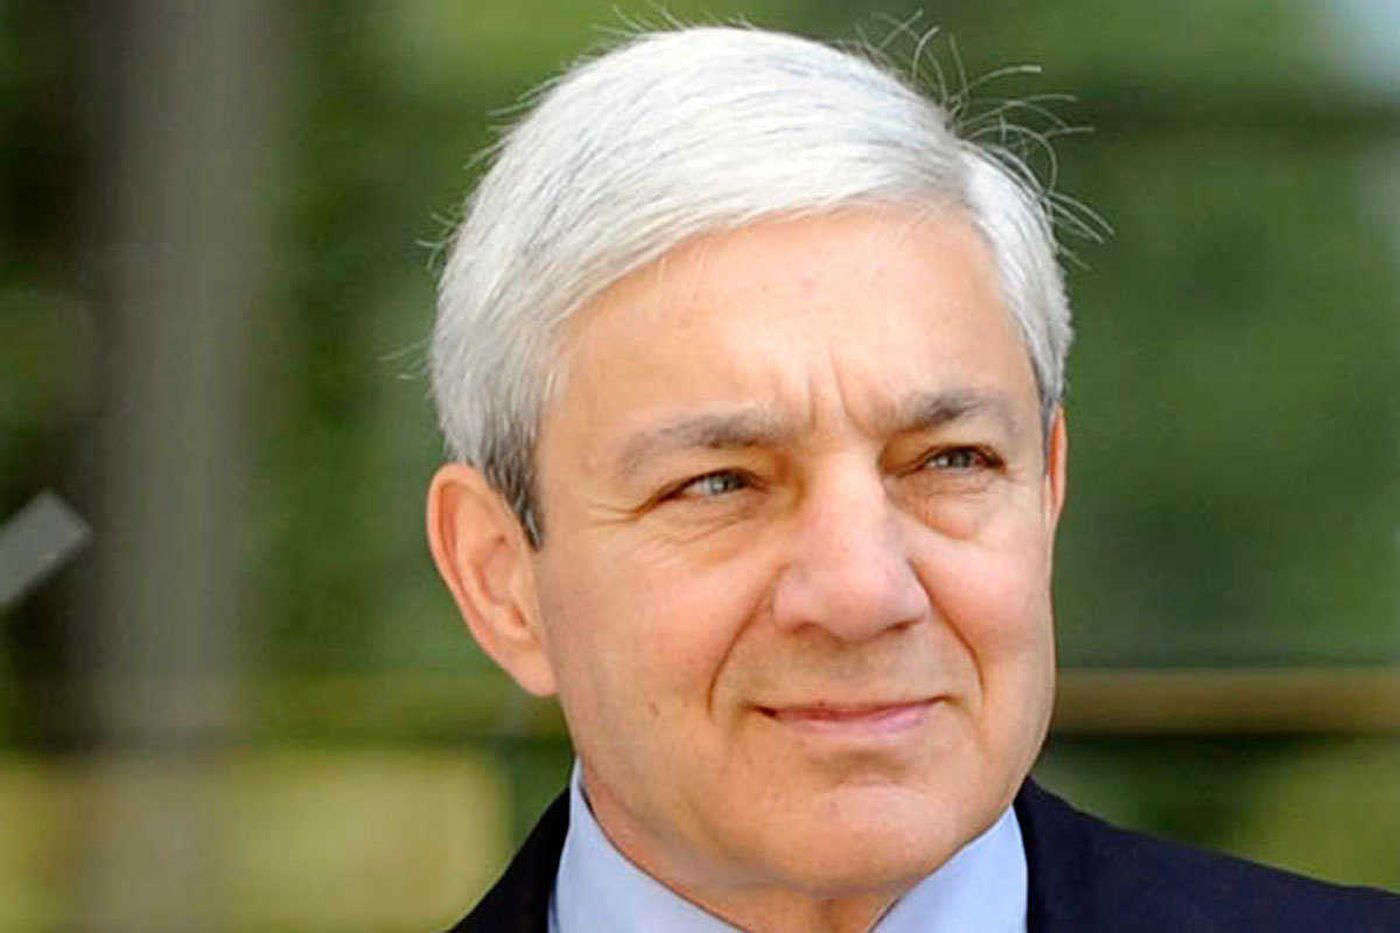 Spanier trial could shed light on Penn State's culpability